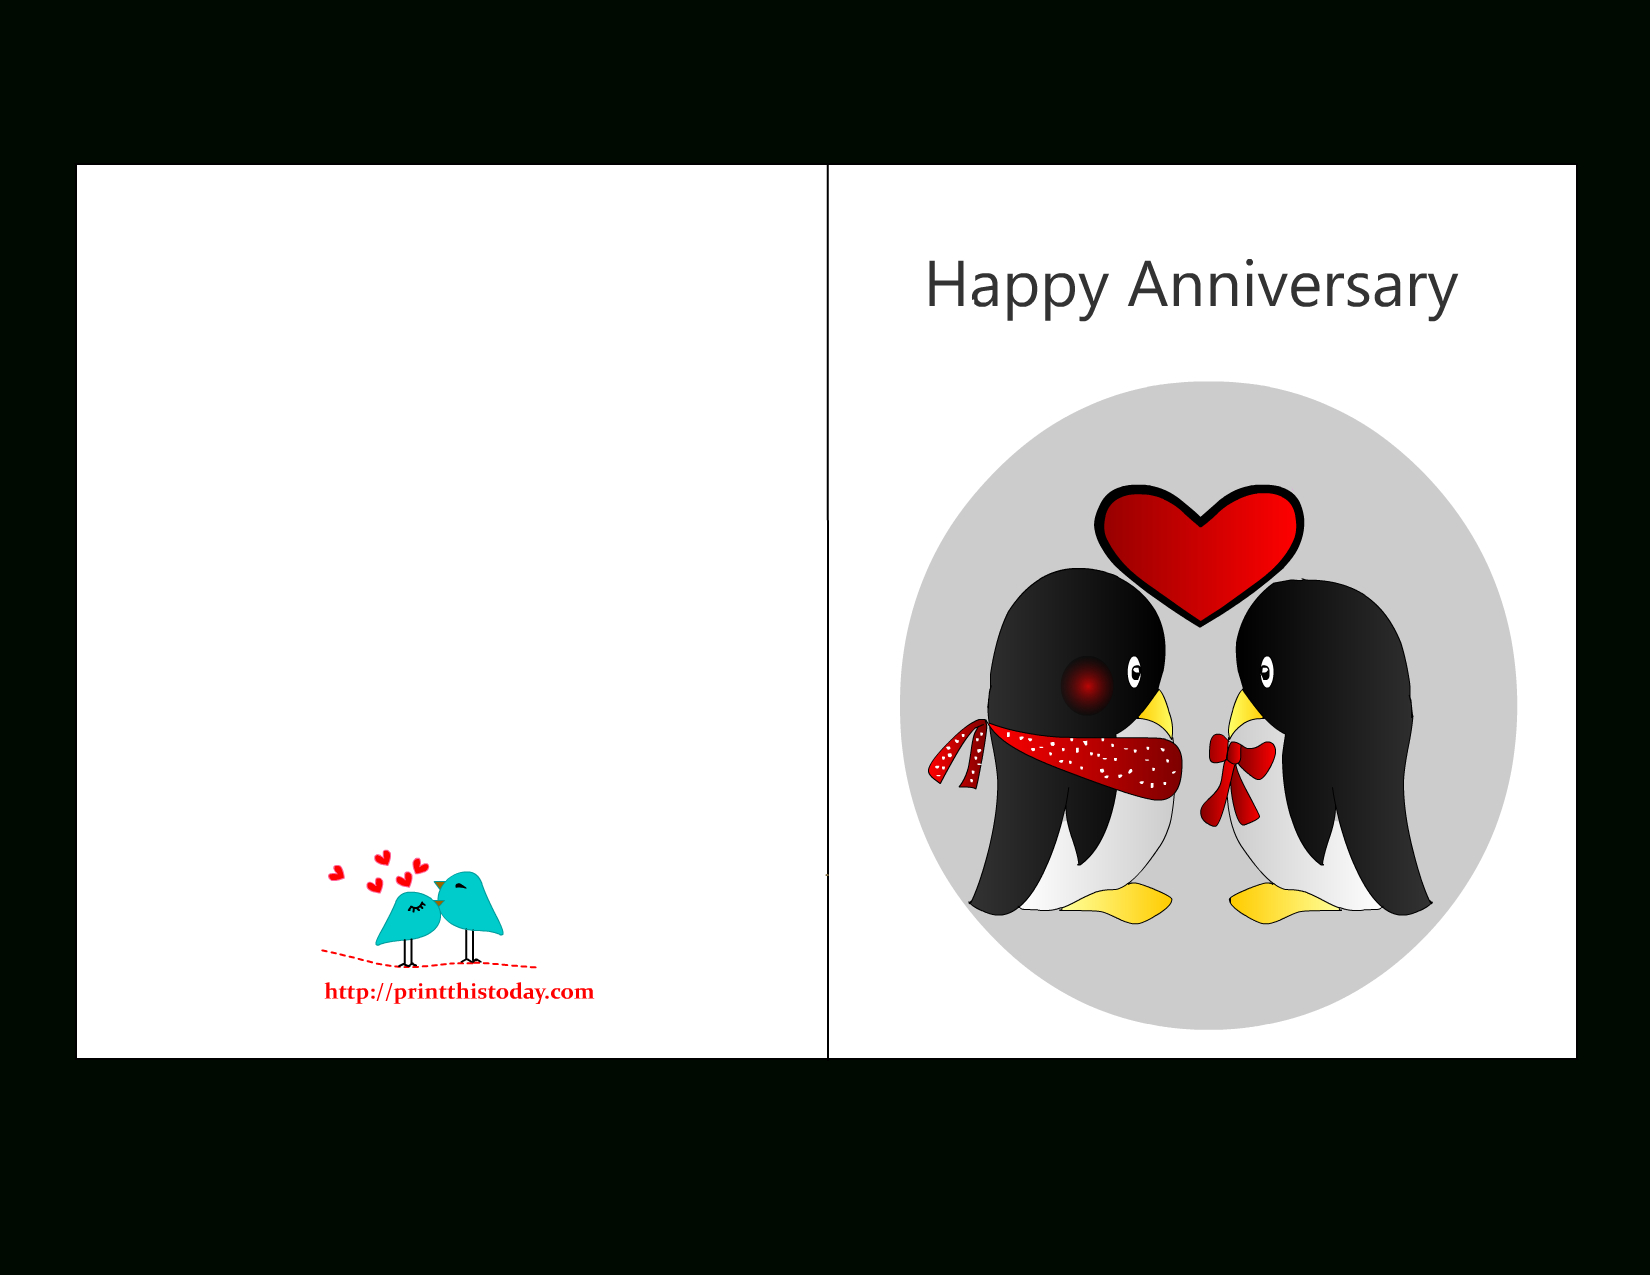 Free Printable Anniversary Cards For Him - Printable Cards - Free Printable Anniversary Cards